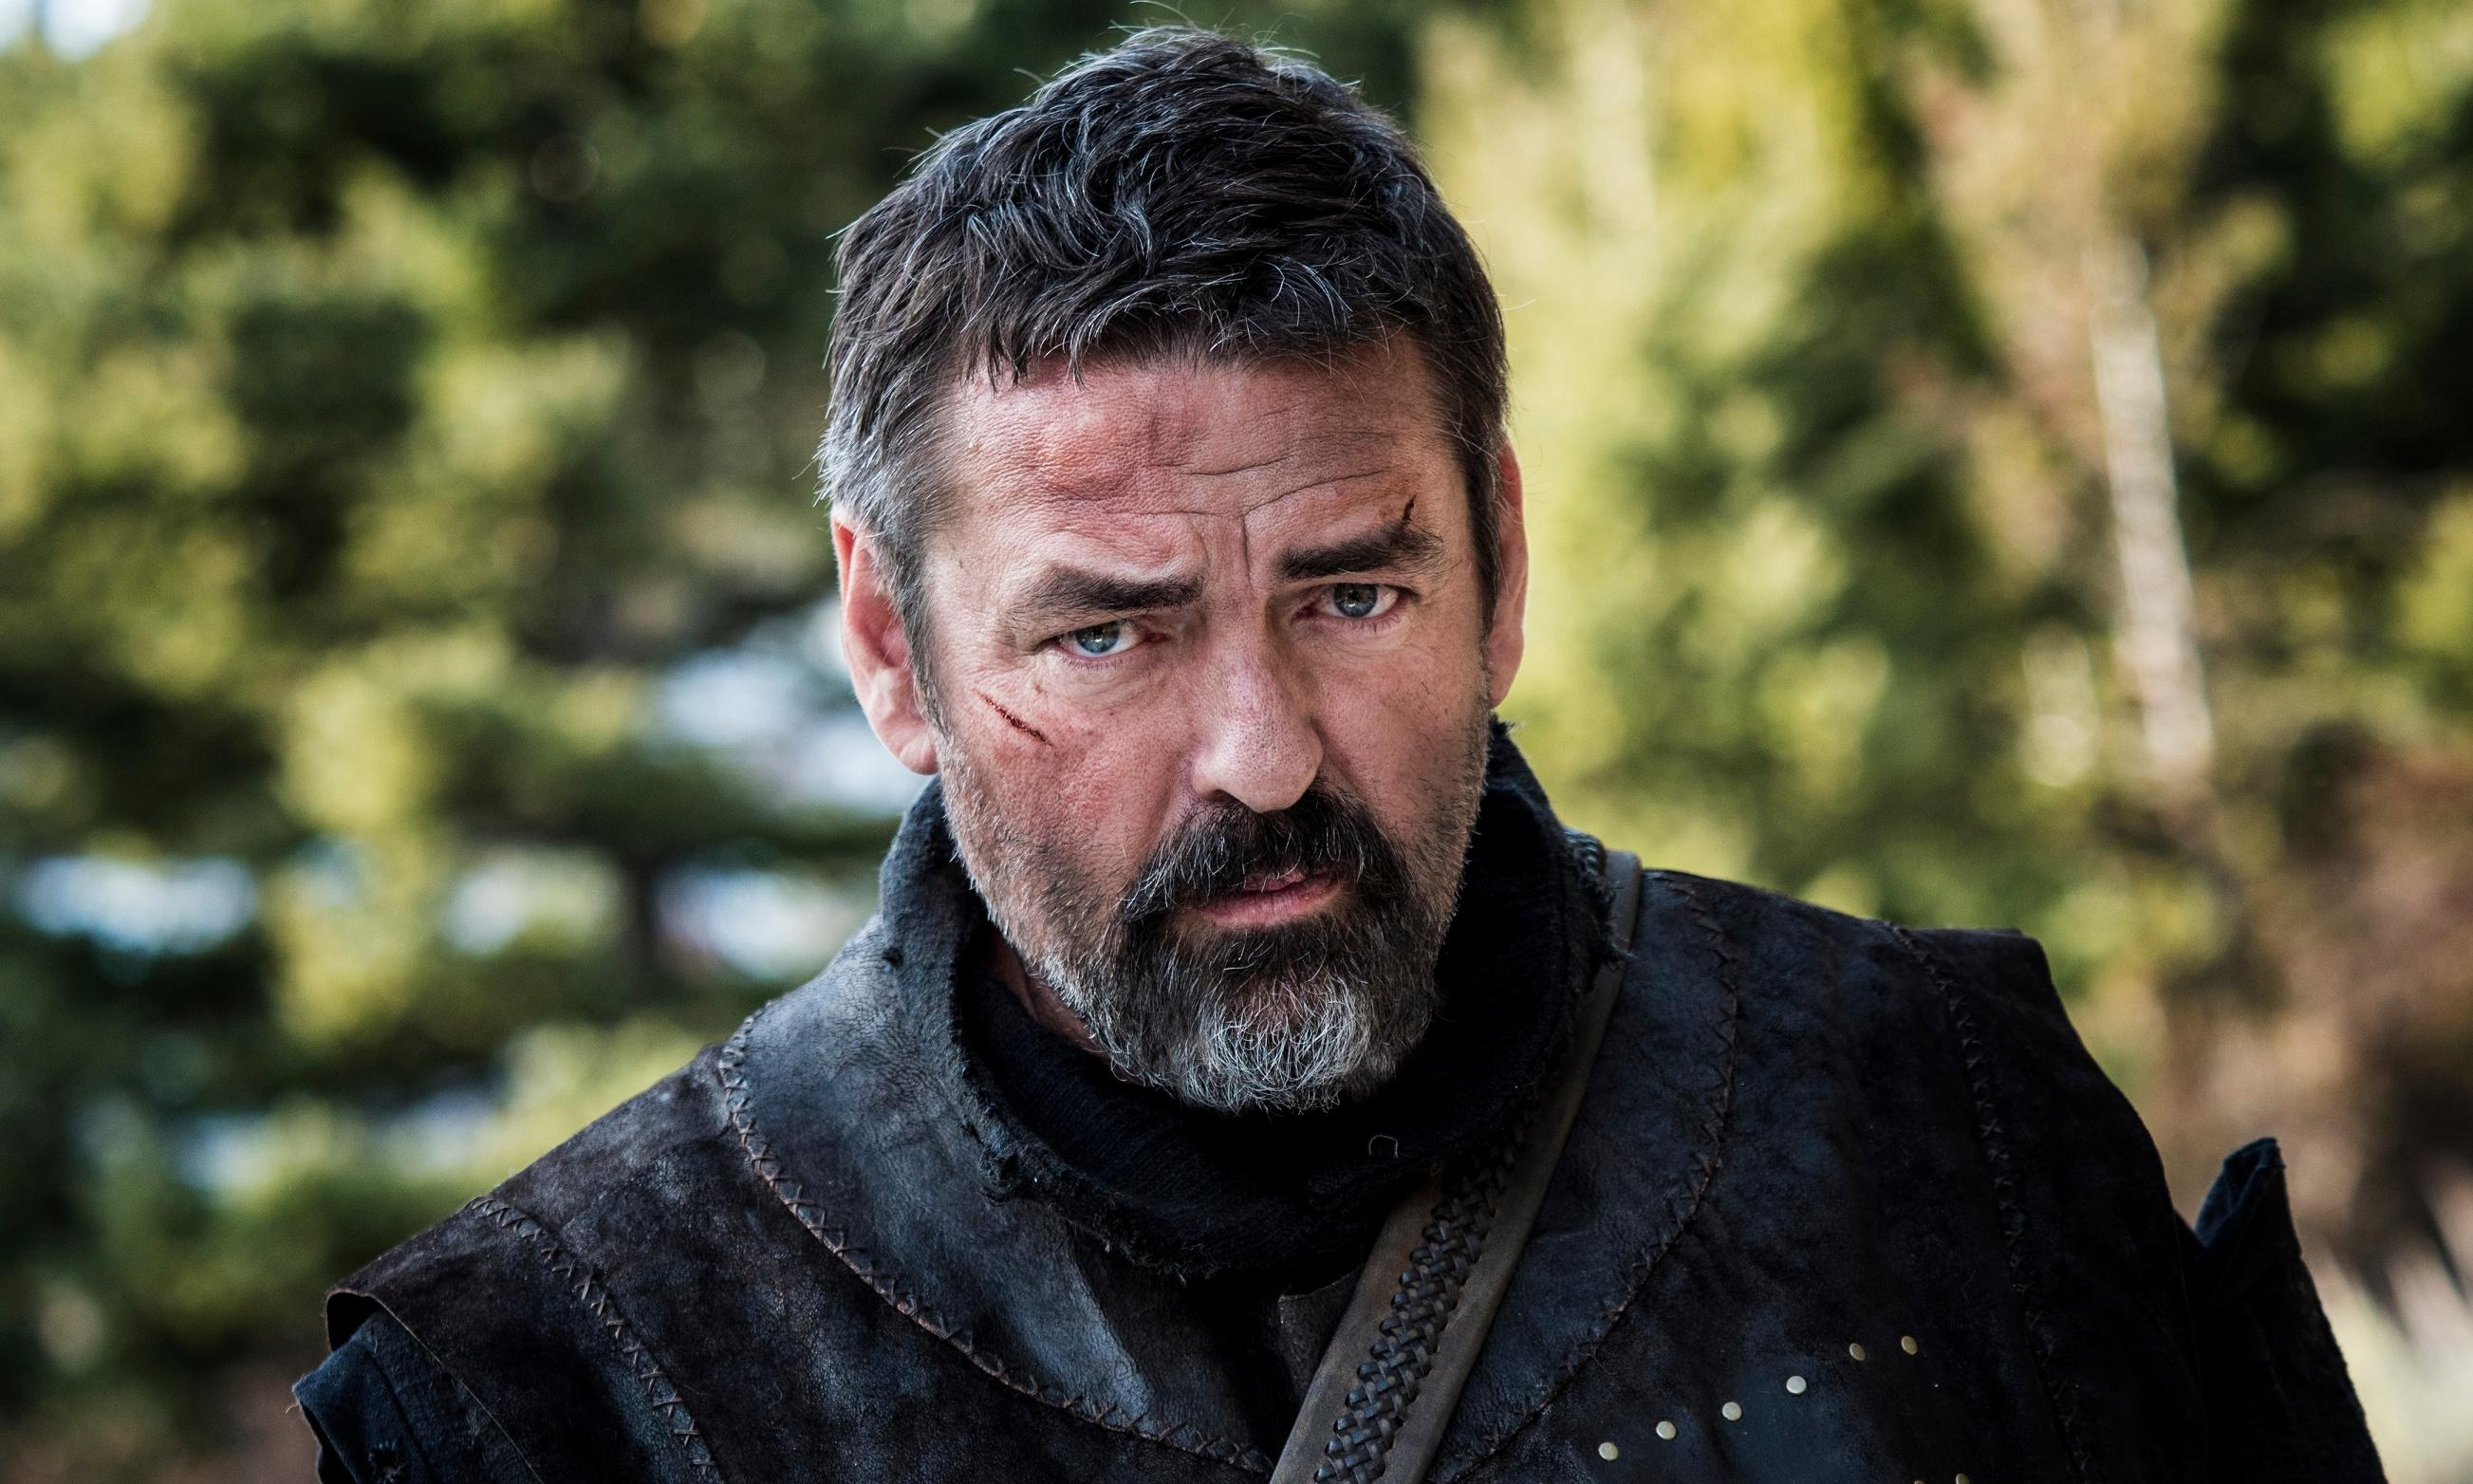 Try, try again: Cineworld bows to Robert the Bruce campaign